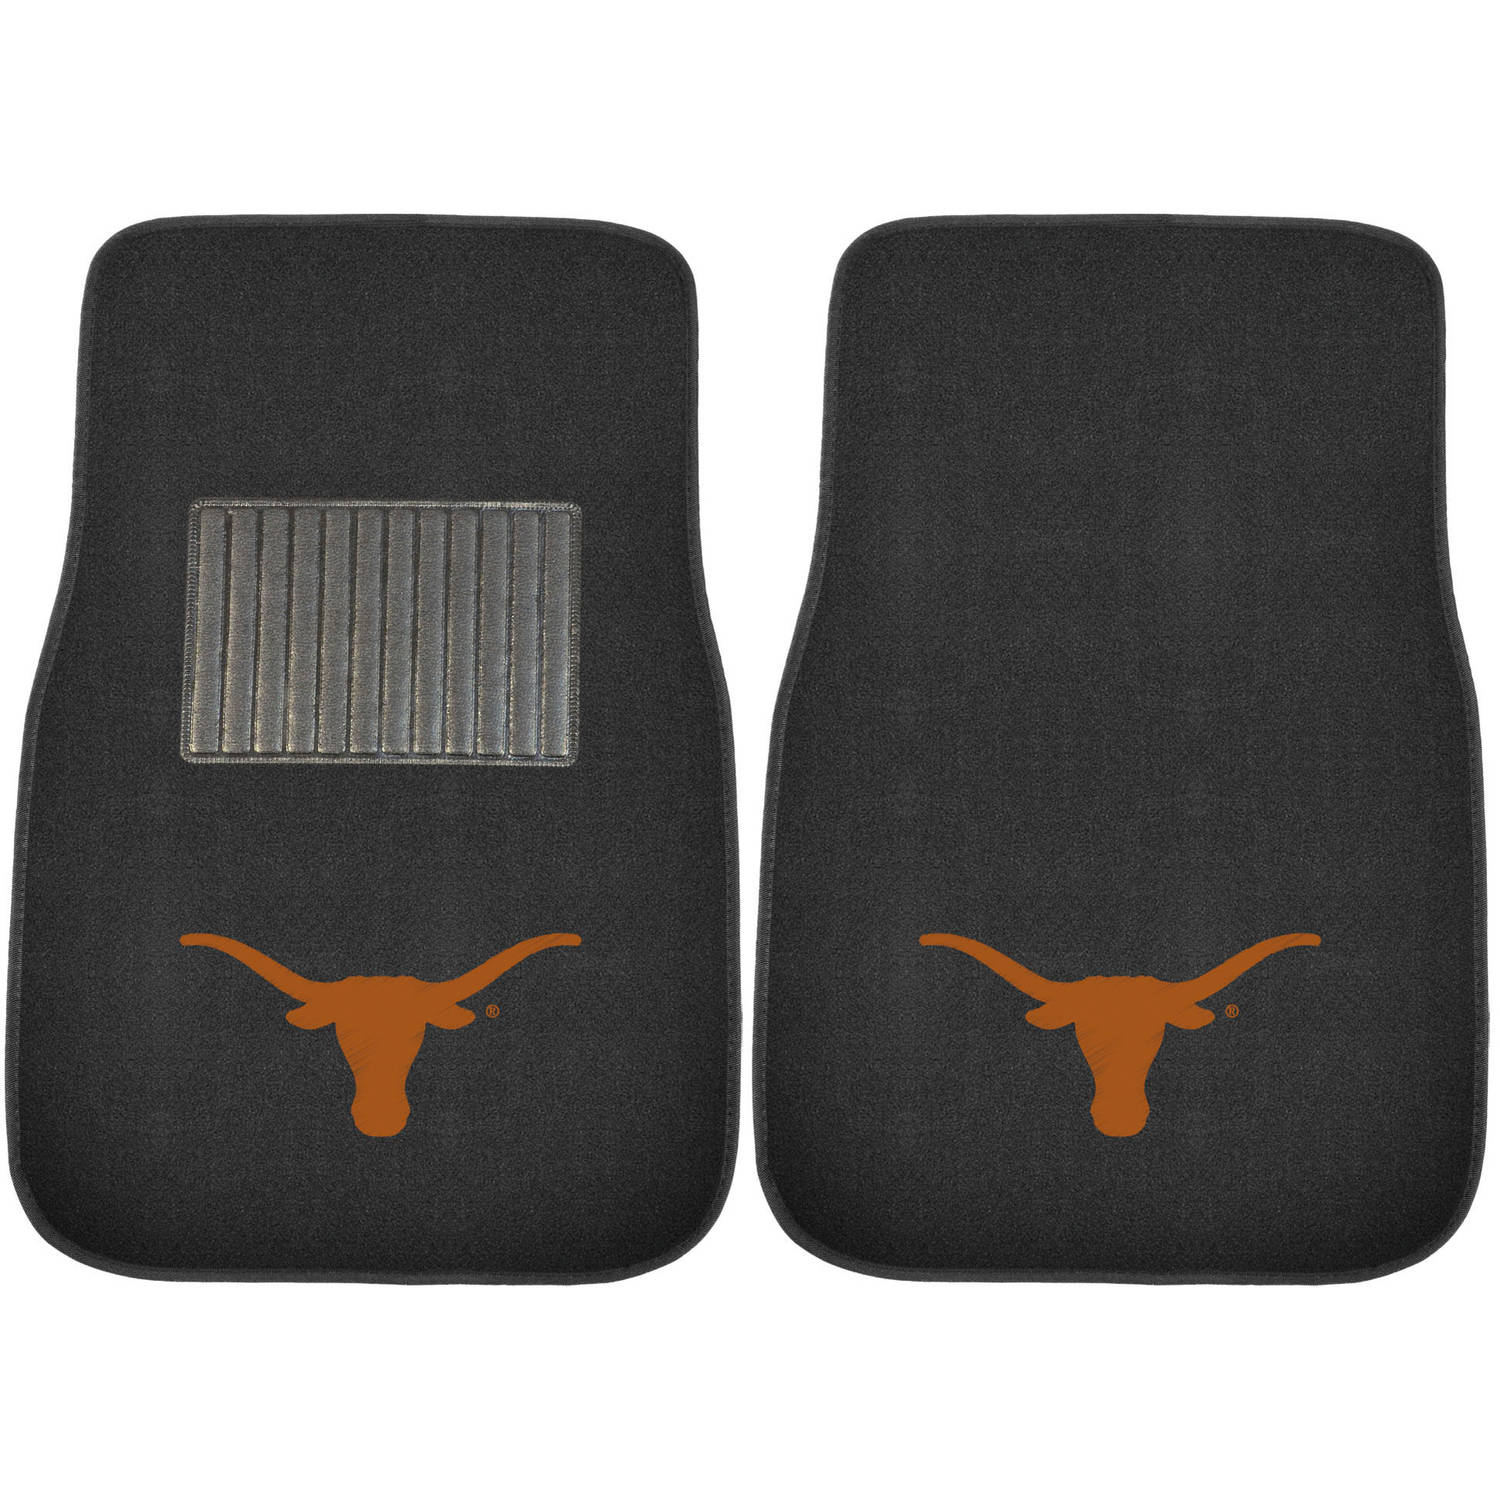 University of Texas Embroidered Car Mats